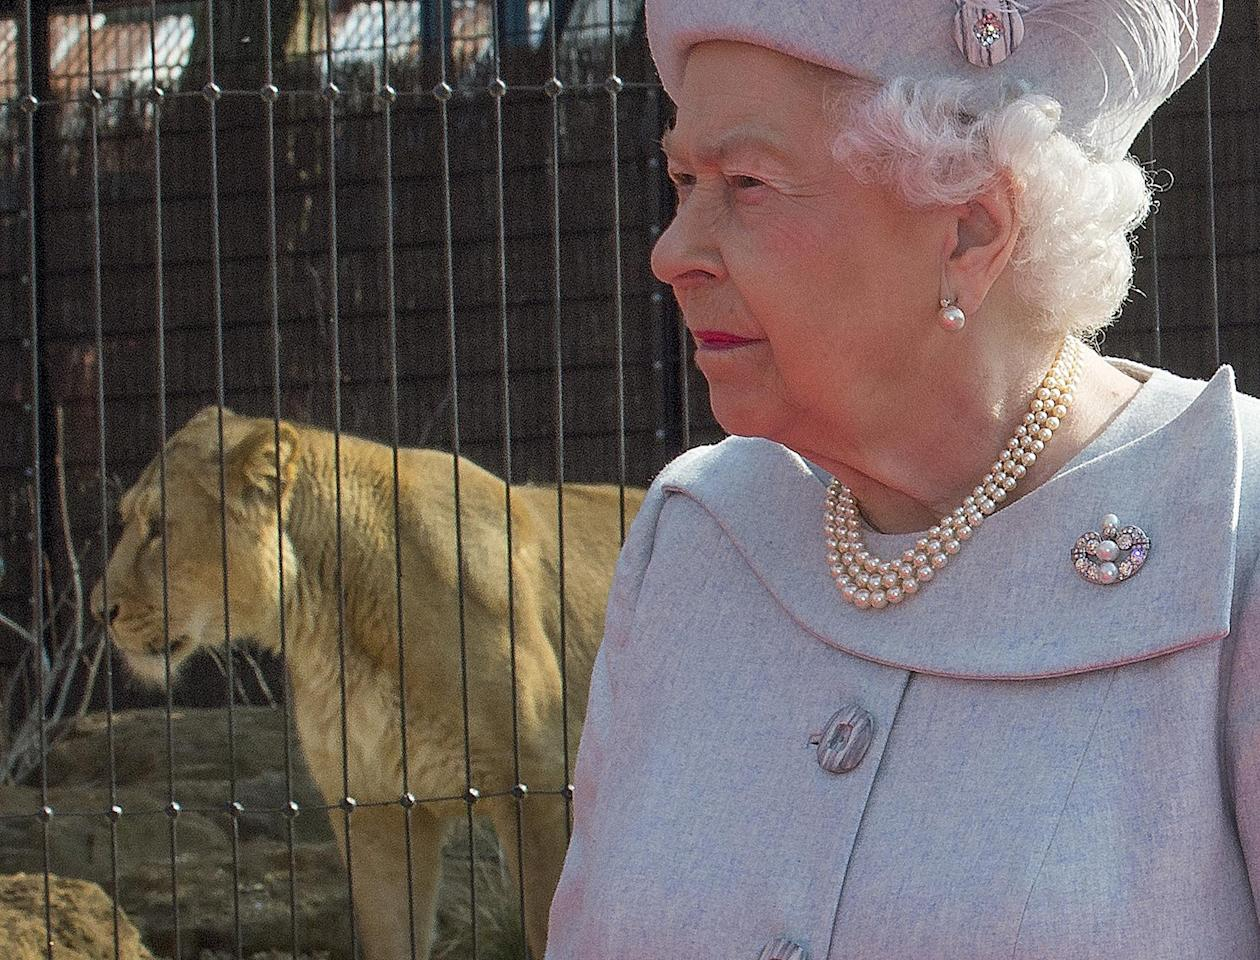 Britain's Queen Elizabeth visits the new Asiatic lion enclosure at London Zoo, March 17, 2016. REUTERS/Arthur Edwards/Pool      TPX IMAGES OF THE DAY